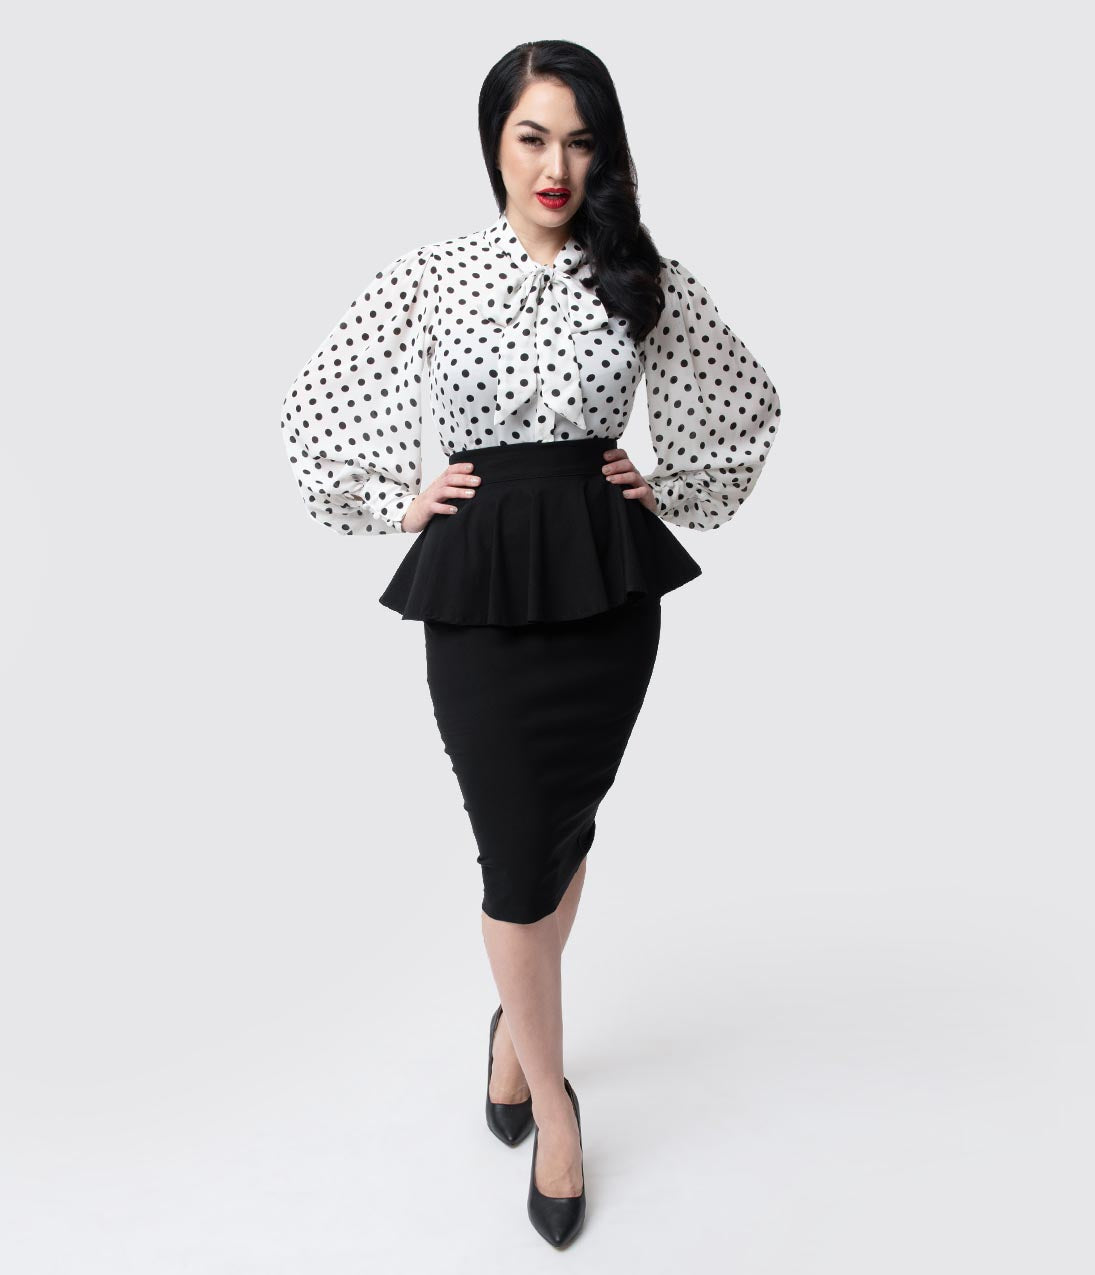 Retro Skirts: Vintage, Pencil, Circle, & Plus Sizes Unique Vintage 1940S Black Stretch Peplum Boulevard Pencil Skirt $58.00 AT vintagedancer.com